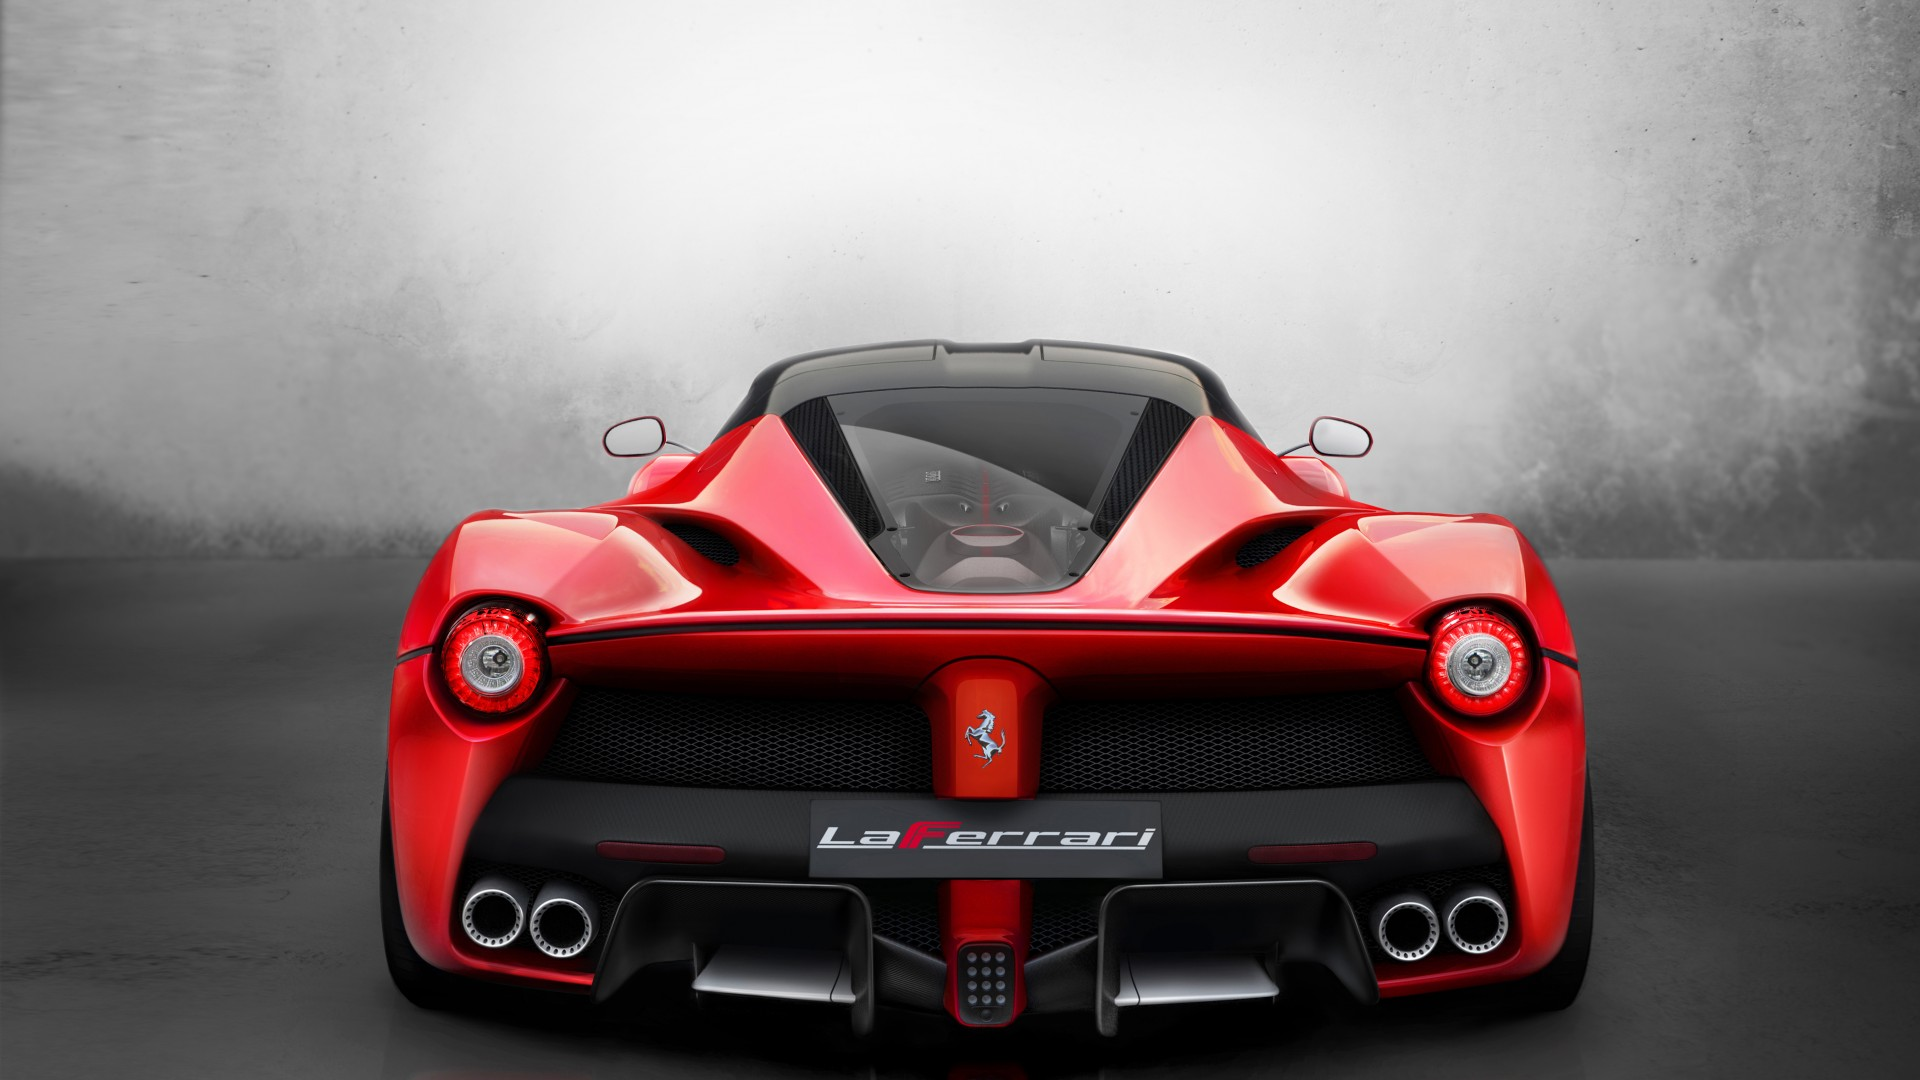 wallpaper ferrari laferrari hybrid sports car ferrari supercar f150 f70 limited edition. Black Bedroom Furniture Sets. Home Design Ideas